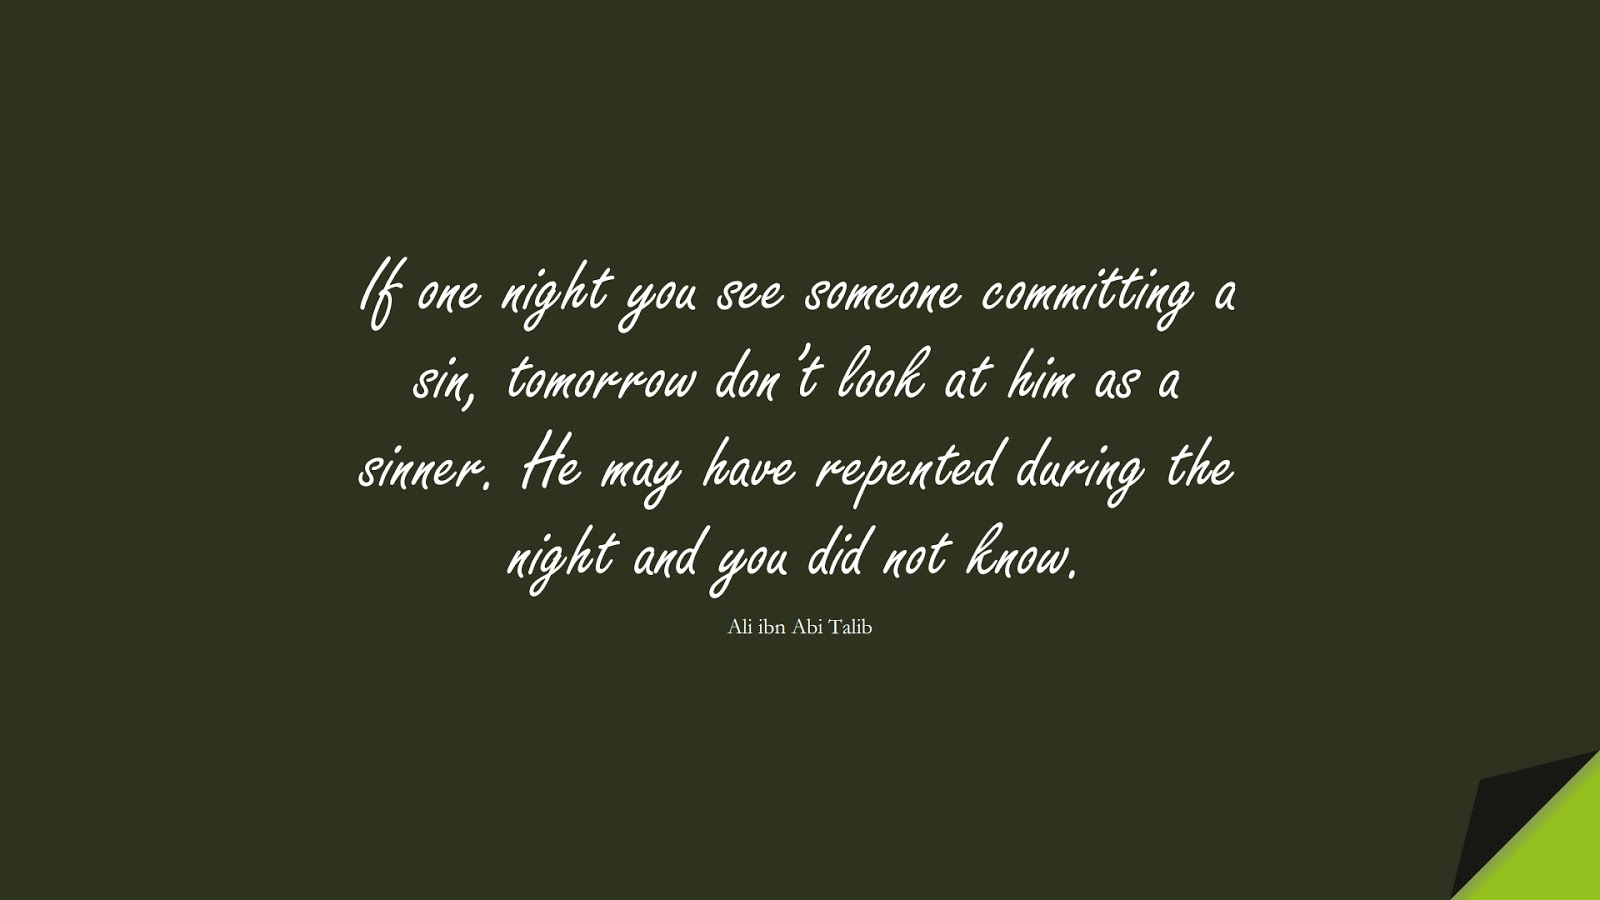 If one night you see someone committing a sin, tomorrow don't look at him as a sinner. He may have repented during the night and you did not know. (Ali ibn Abi Talib);  #AliQuotes